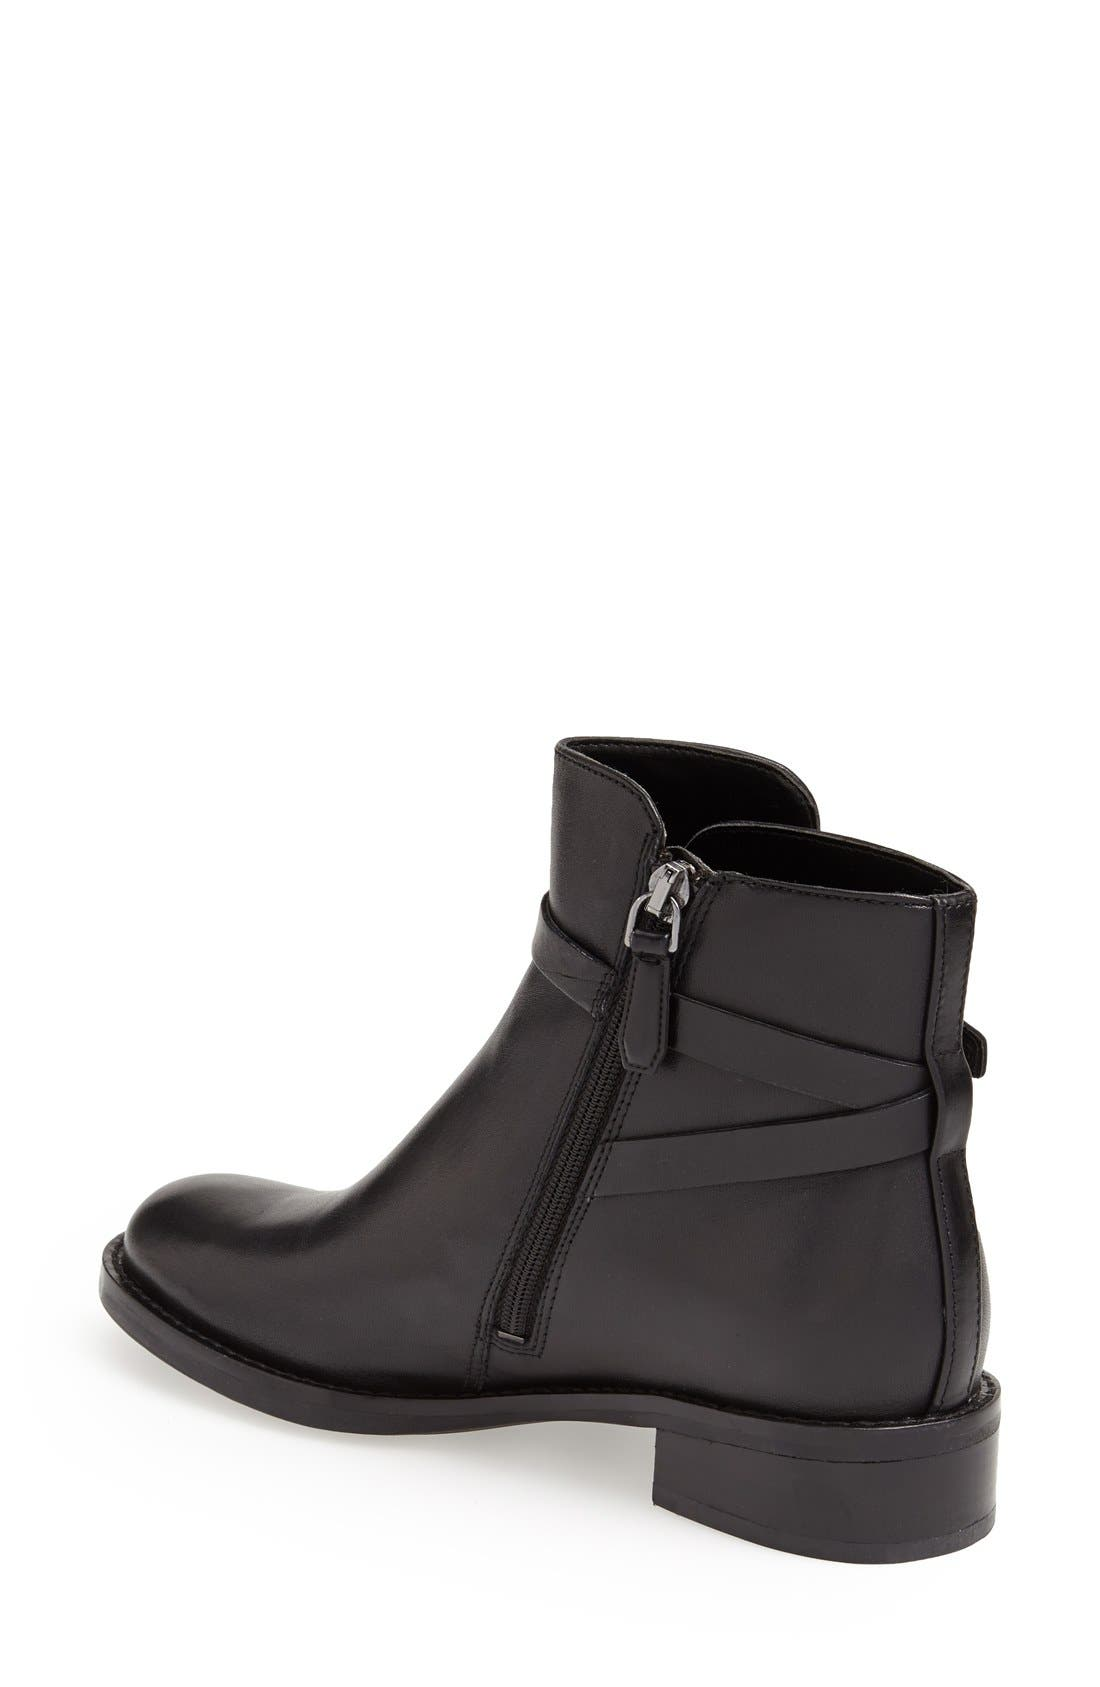 Alternate Image 2  - ECCO 'Hobart Strap' Ankle Boot (Women)